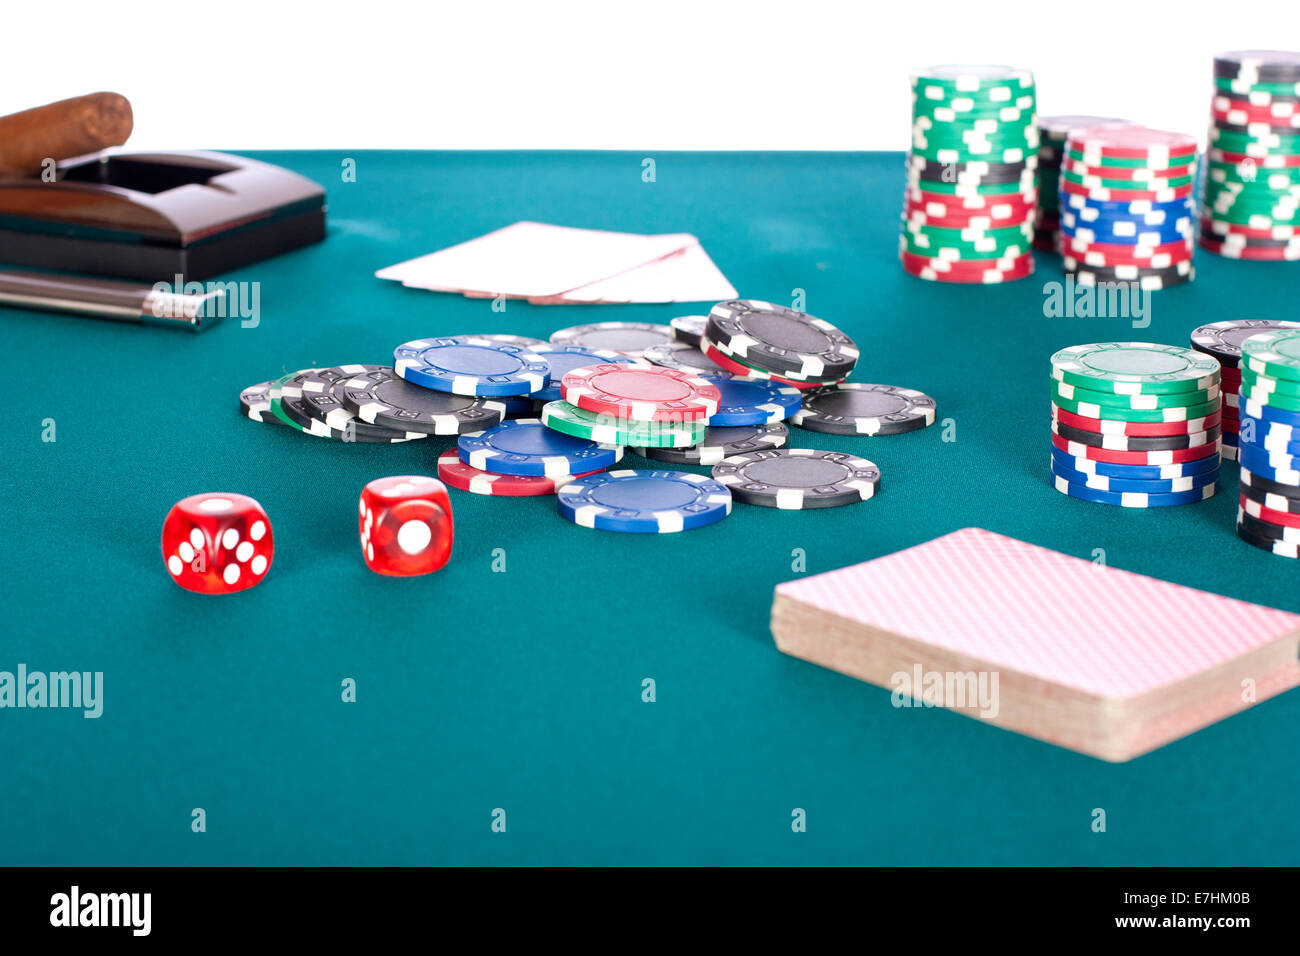 Poker table background - A Selection Of Various Value Poker Chips On A Green Felt Poker Table Background And Other Things With White Background